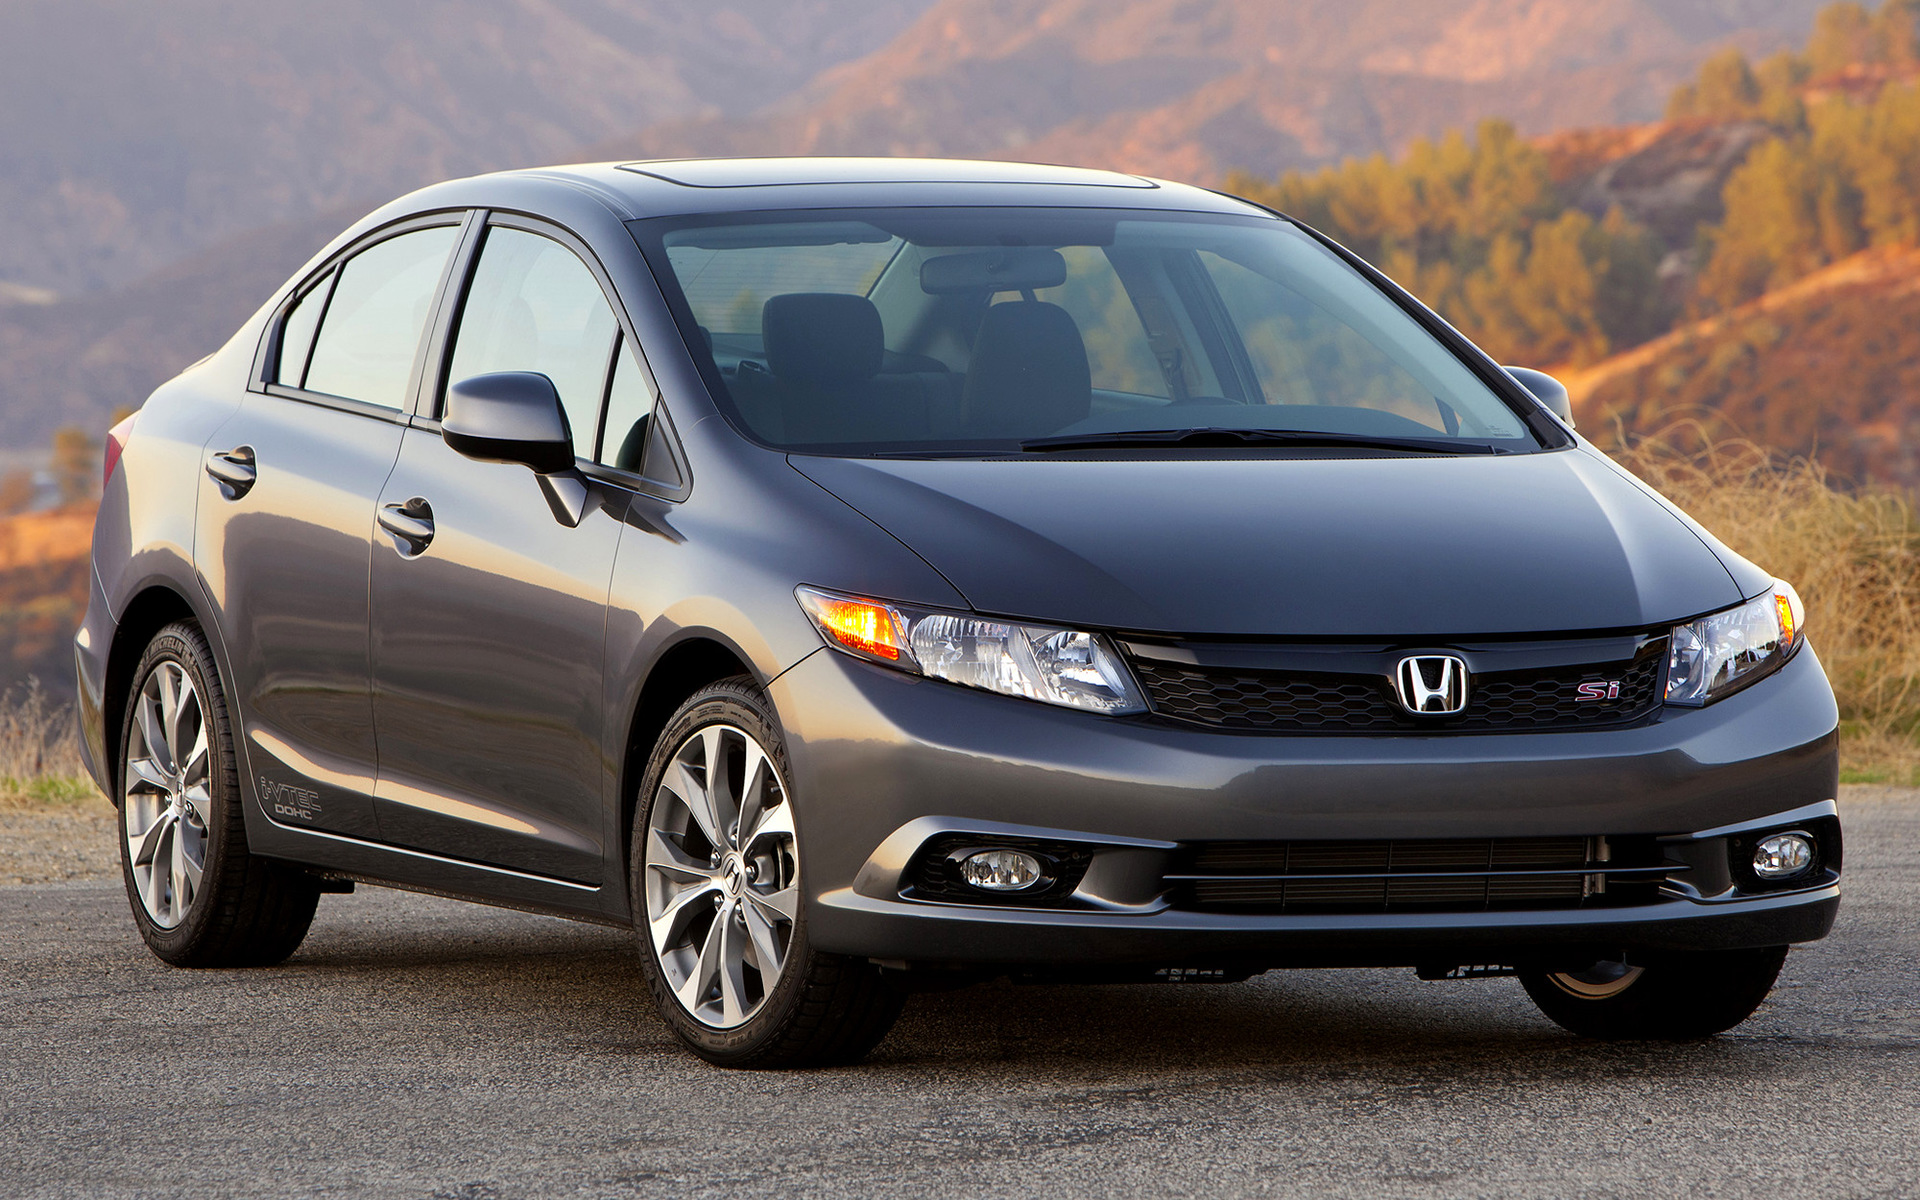 2011 Honda Civic Si Sedan Wallpapers And Hd Images Car